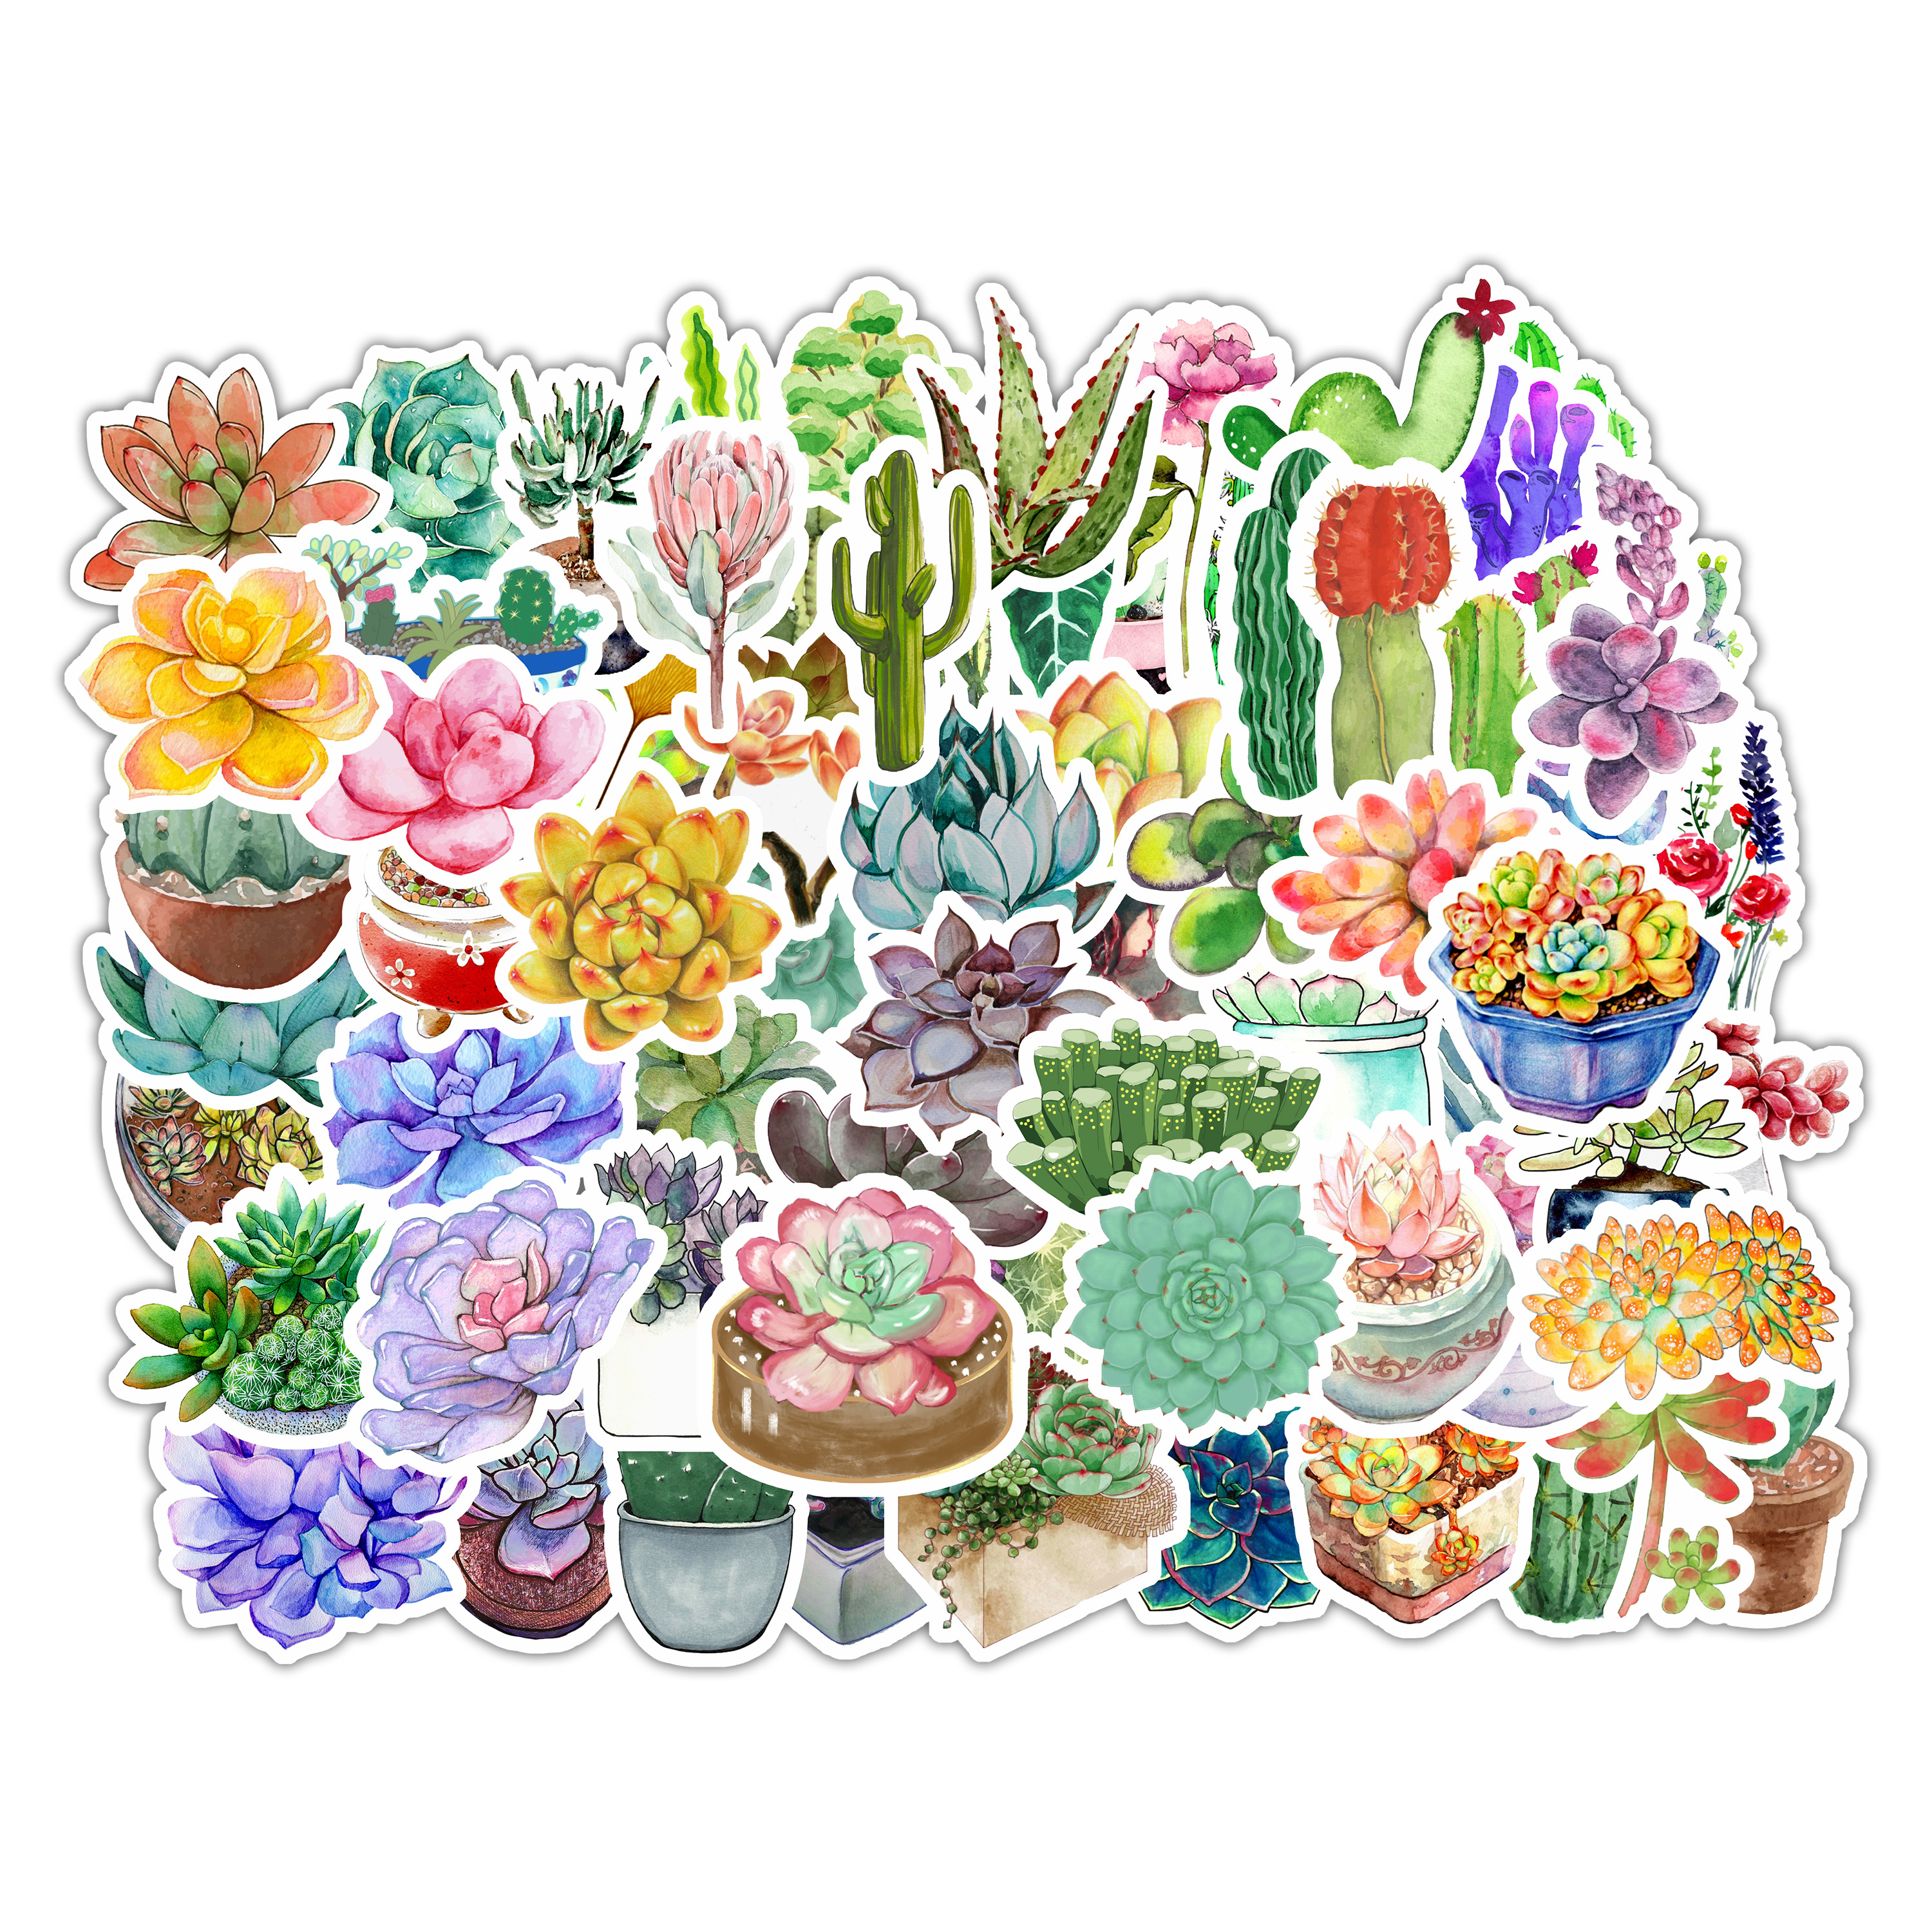 71pcs Bag No Repeat Cute Succulent Plants Flowers Graffiti Stickers Waterproof Pvc Vinyl Stickers For Laptop Notebook Buy Succulent Plants Stickers High Quality Stickers Pack Lovely Watercolor Flowers Succulent Cactus Leaves Stickers Product On